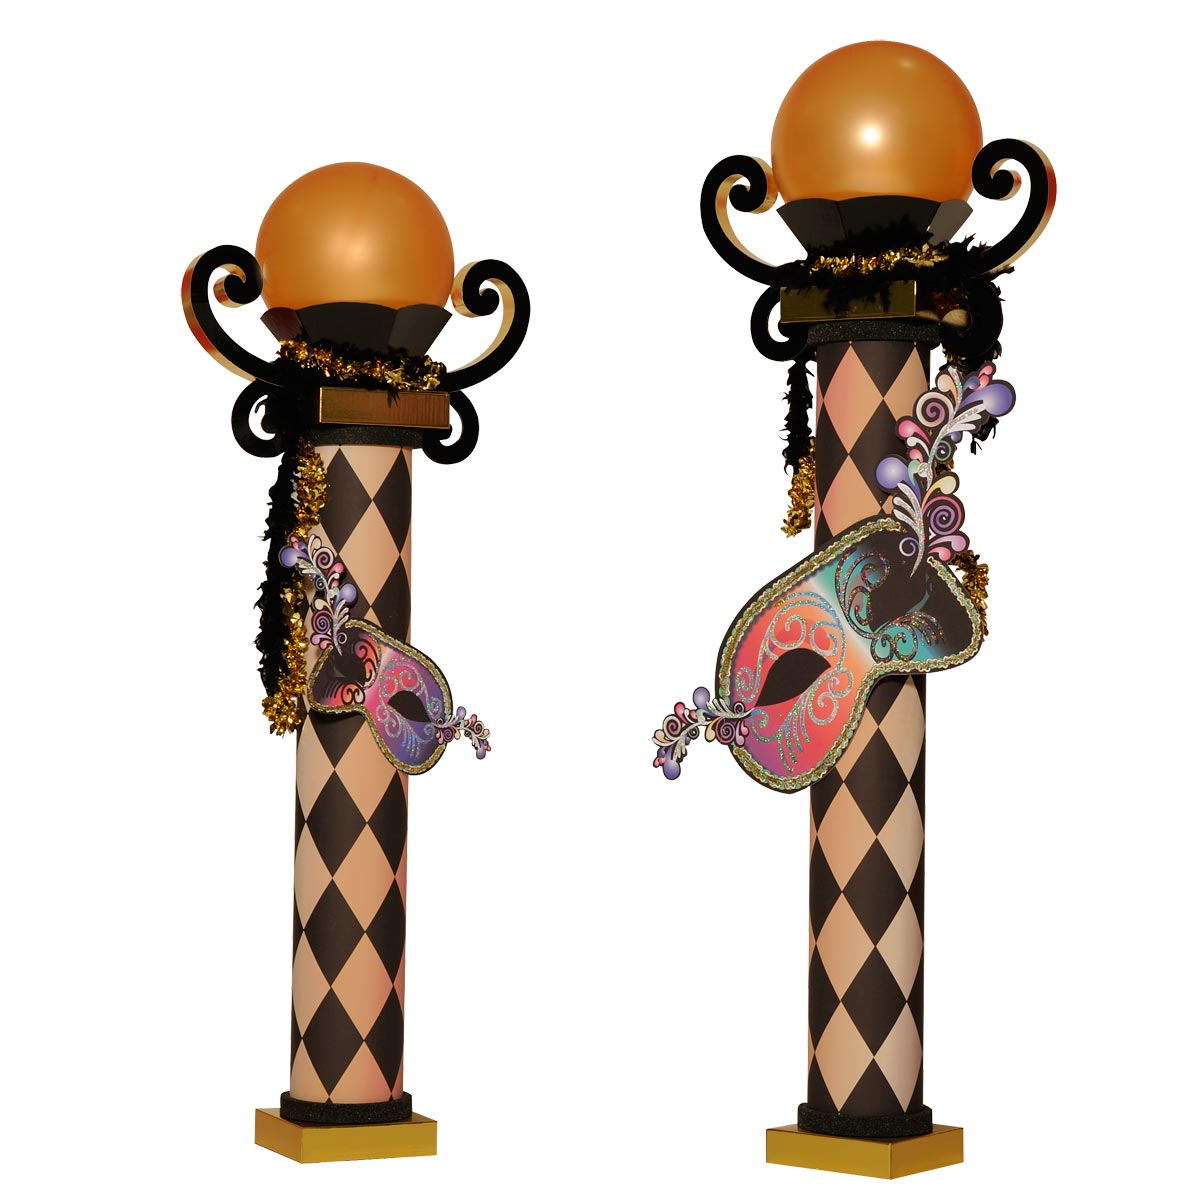 Behind the Mask Columns Kit (set of 3)